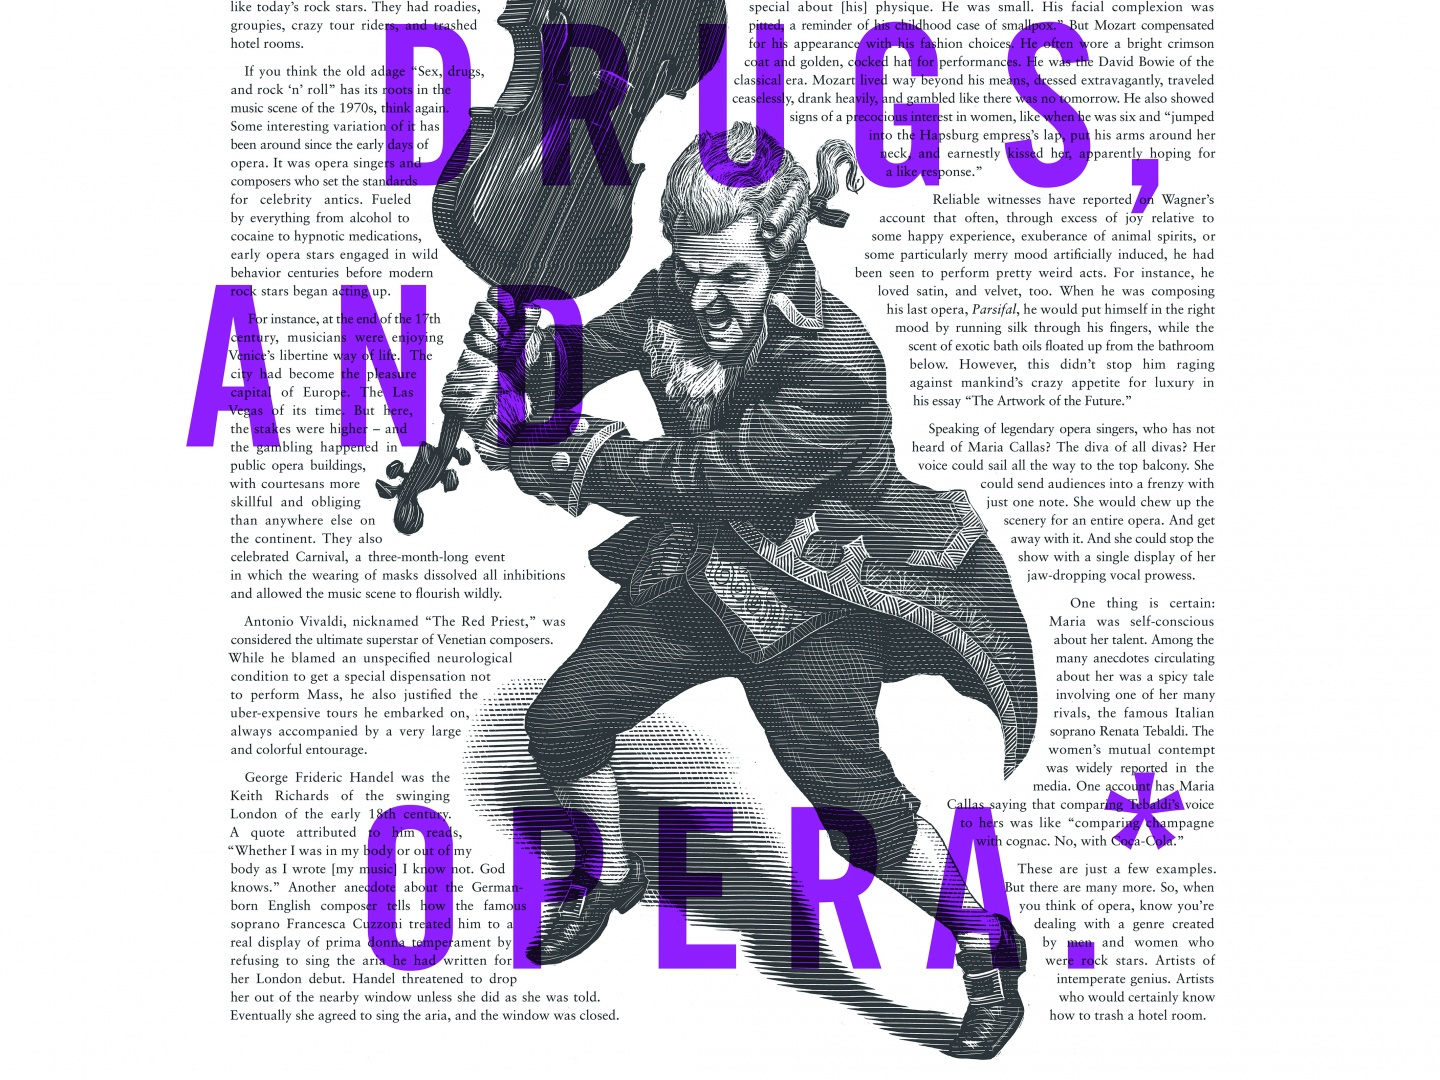 Lyric Opera Print: Sex and Drugs Thumbnail